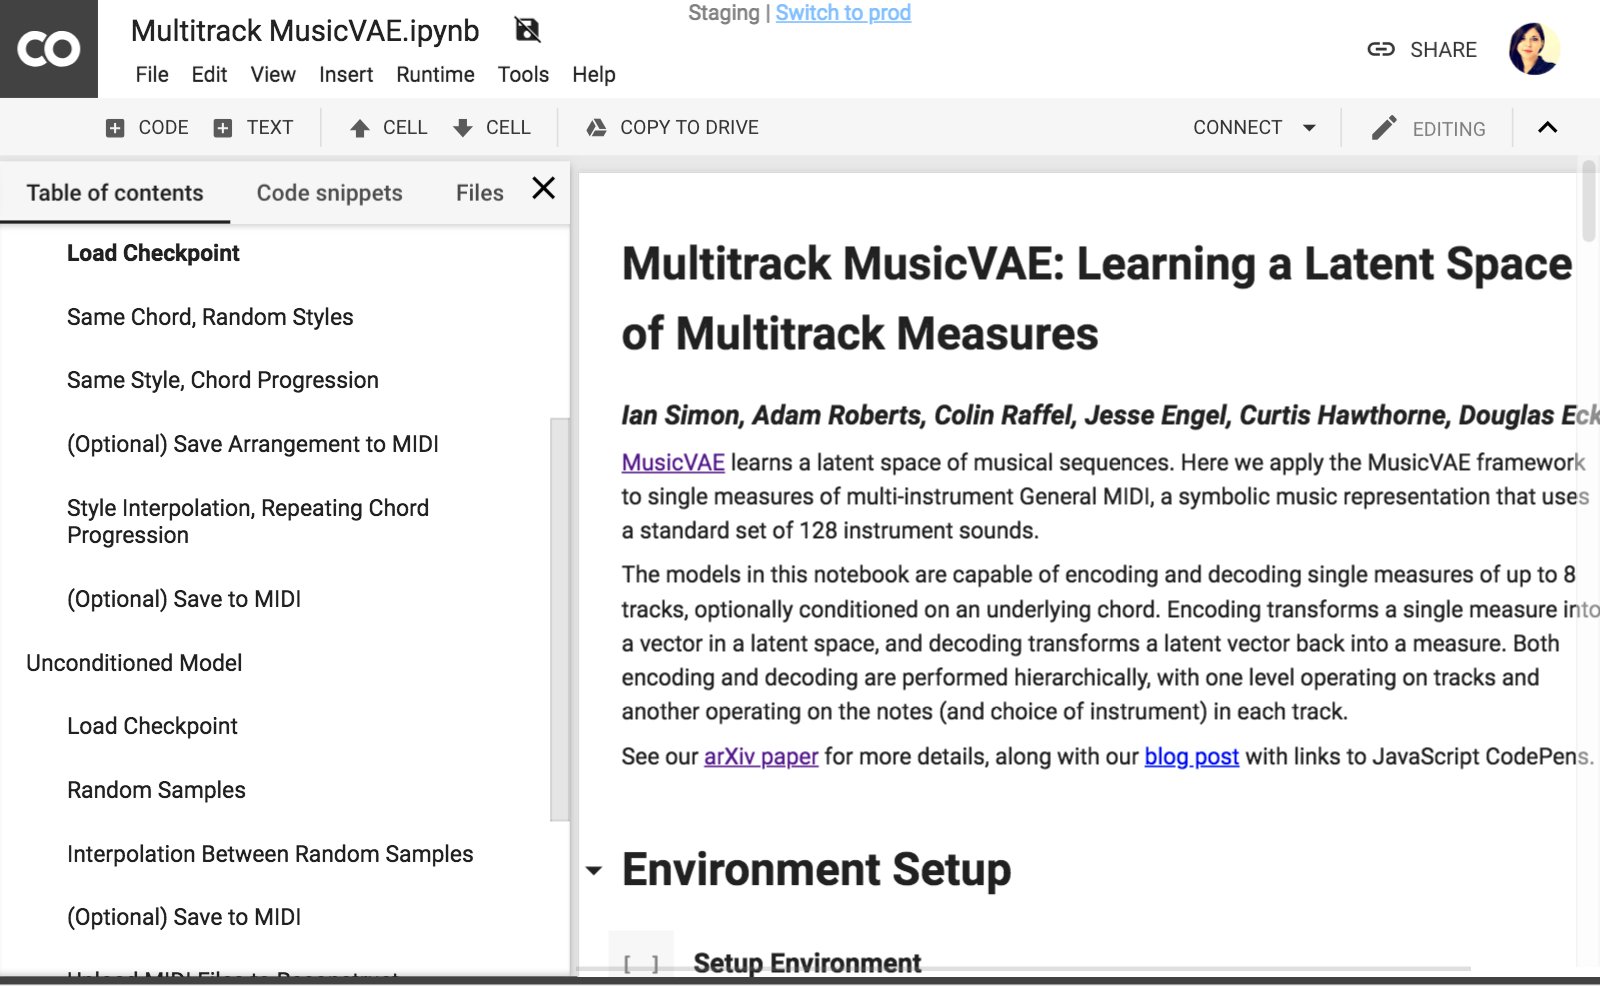 overview of Multitrack MusicVAE